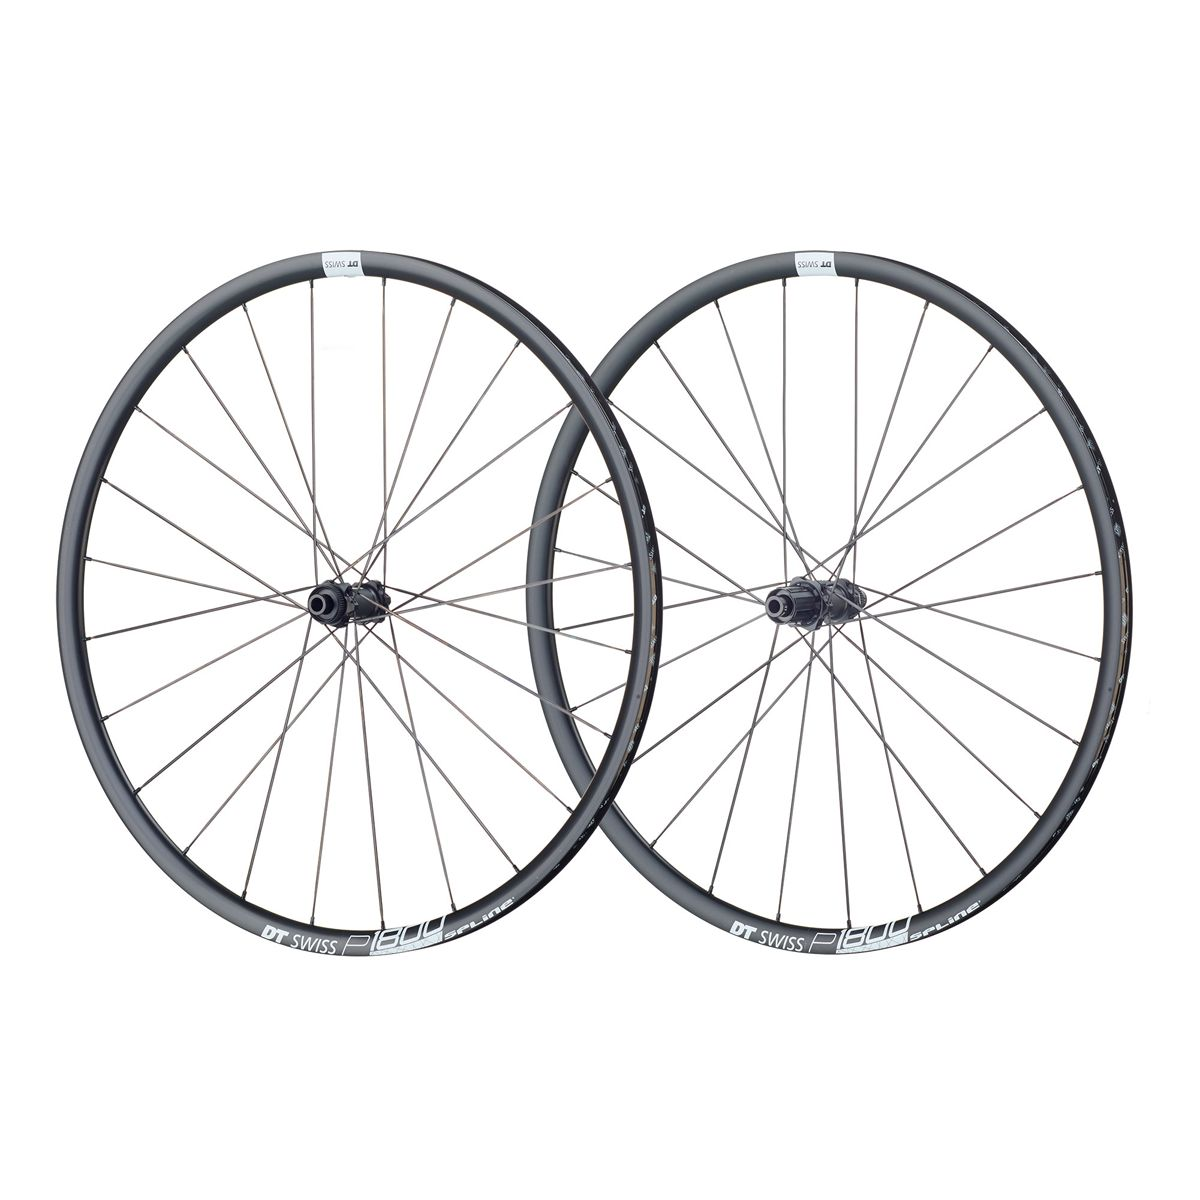 P 1800 Spline 23 db road wheels 28